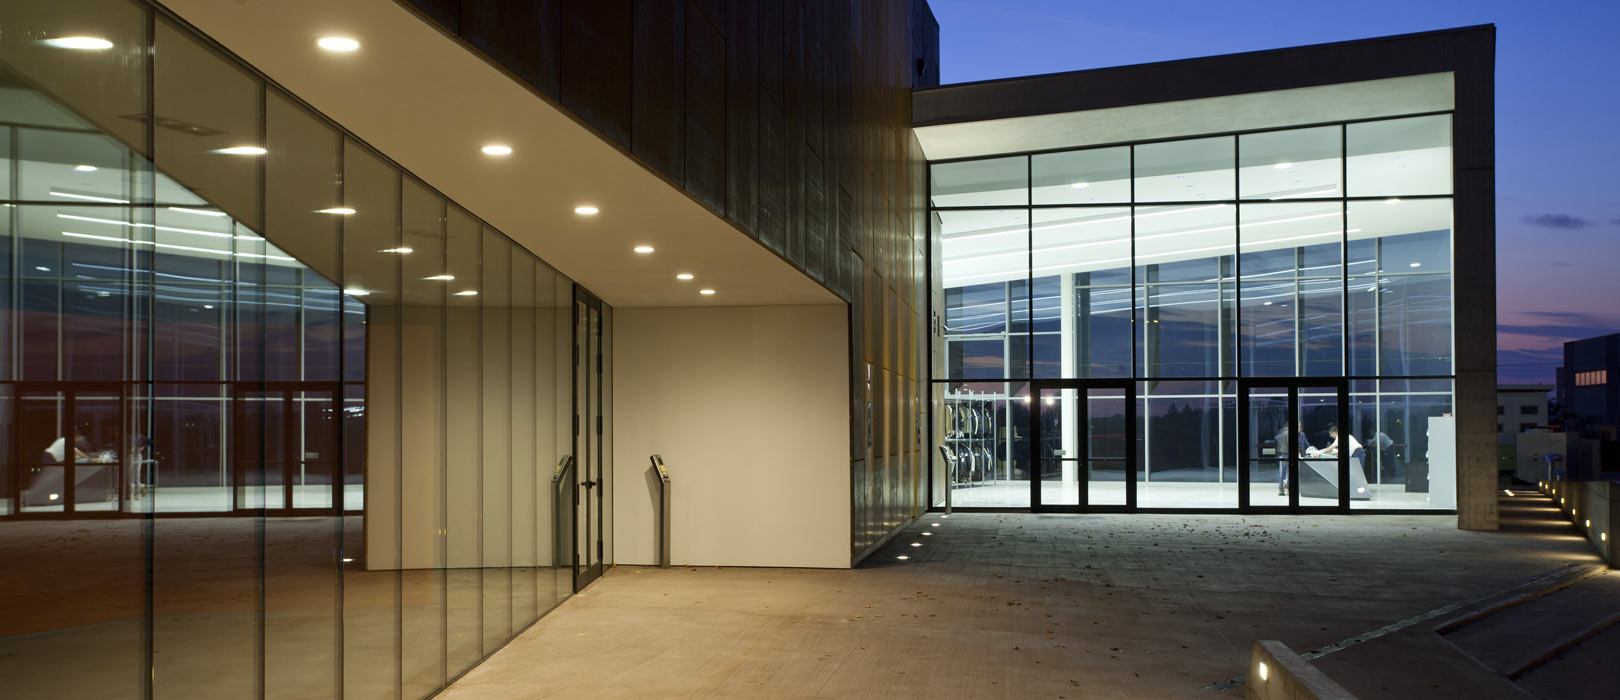 Large glass front entrance of building with lit up interior at night.